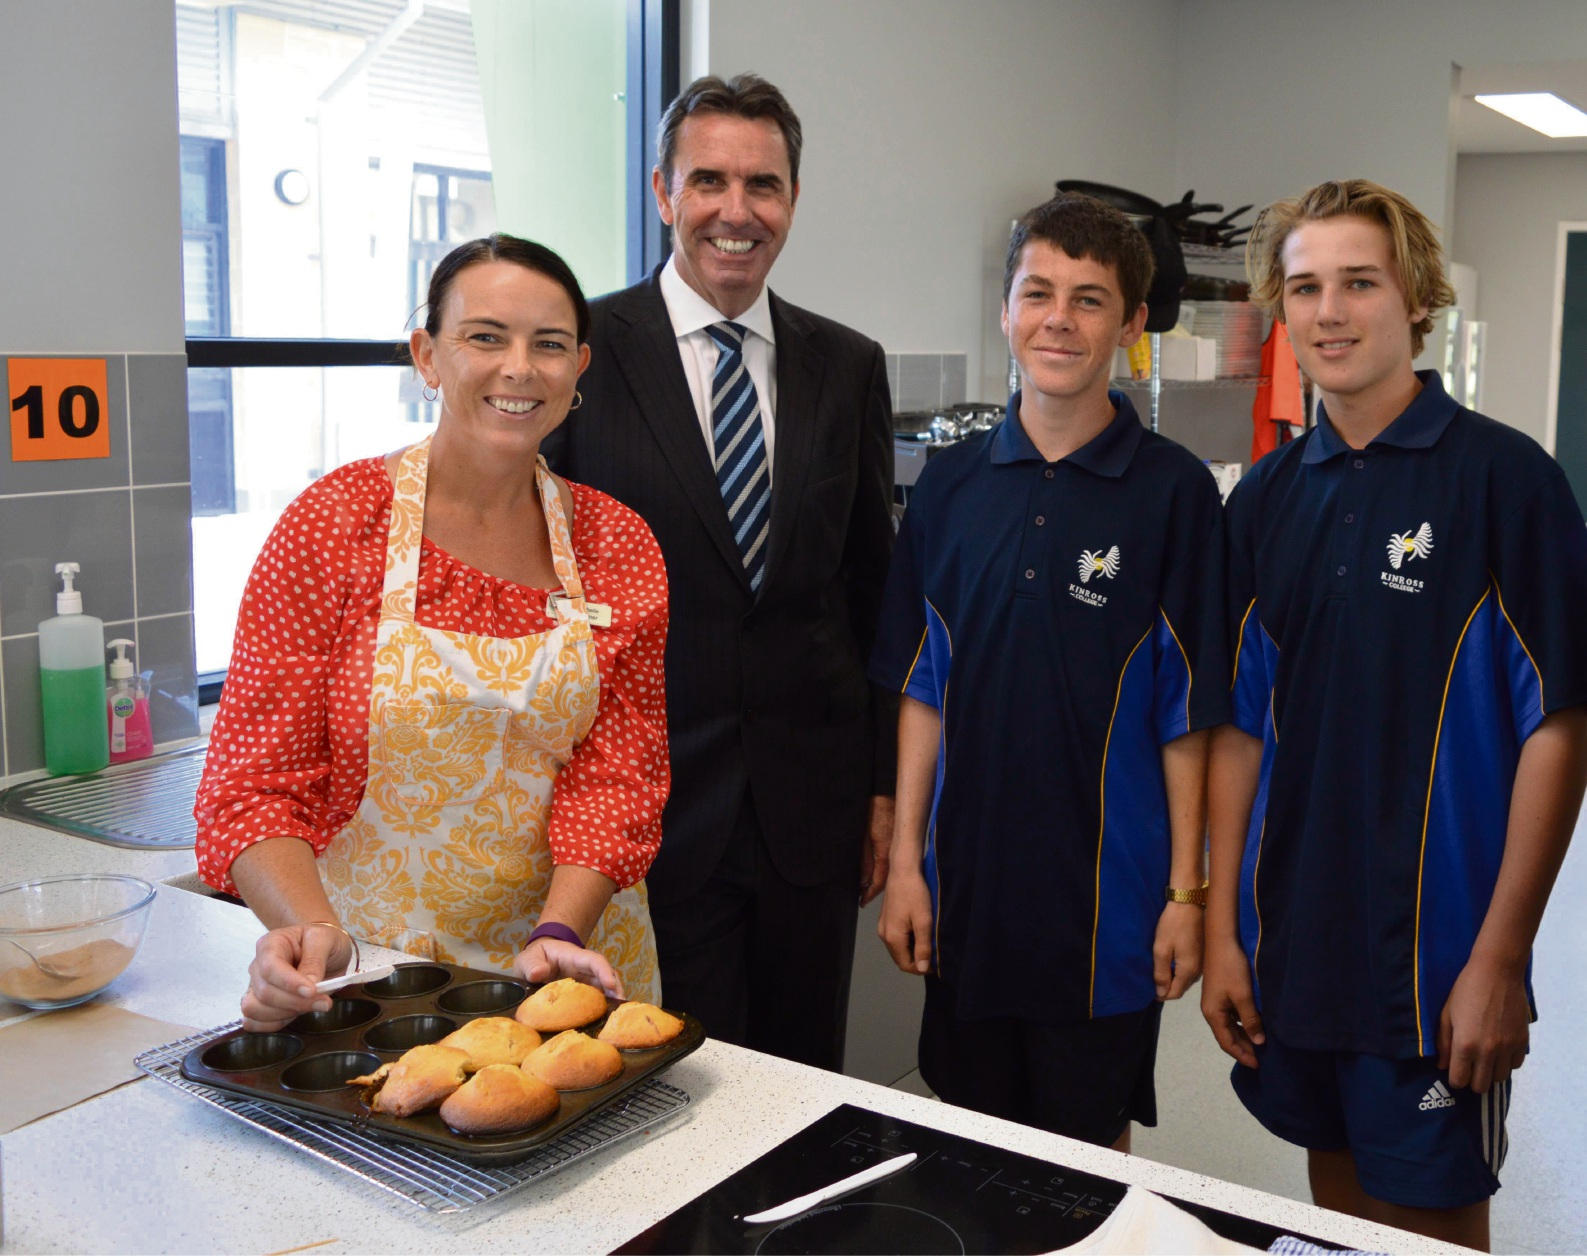 Home economics teacher Michelle Downer, North Metropolitan MLC Peter Collier and students Daniel Morgan and William Woodhall in the food studio.